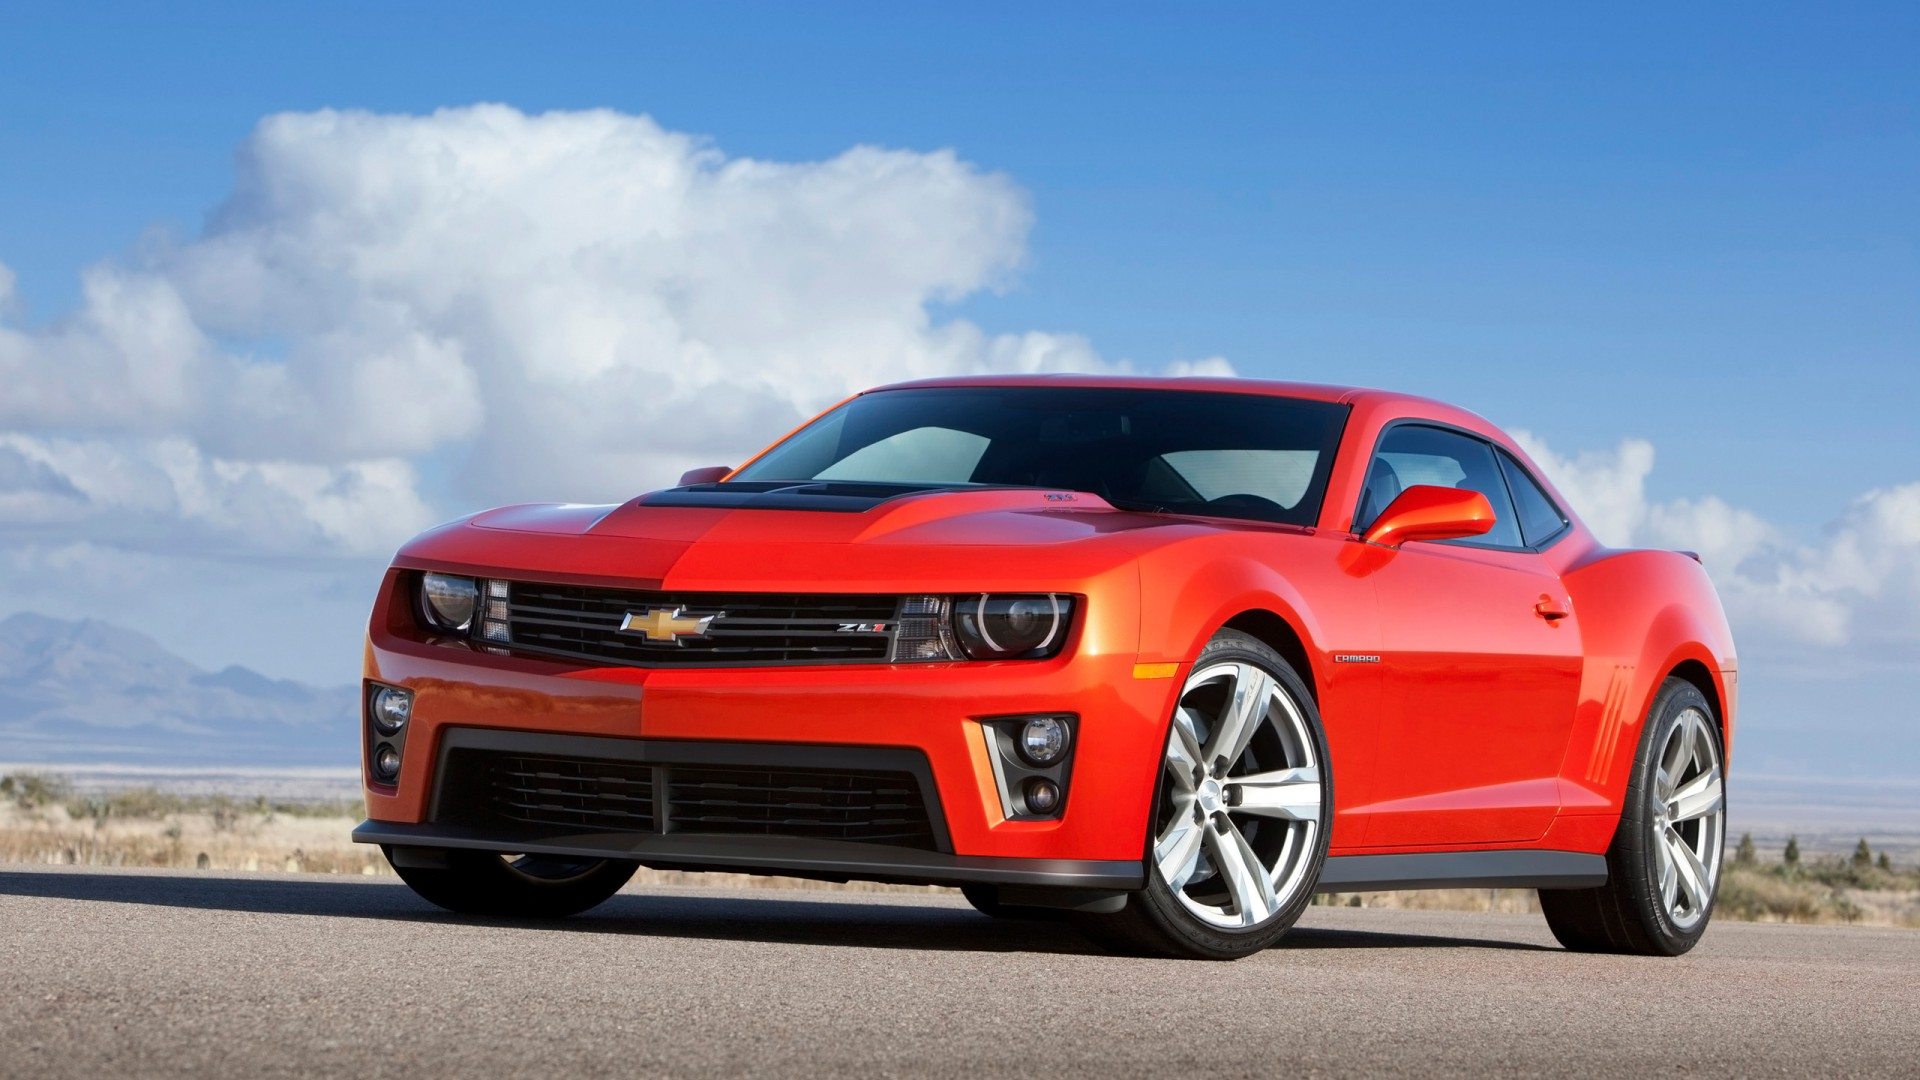 2014 Chevrolet Camaro ZL1 Coupe Wallpaper HD Car